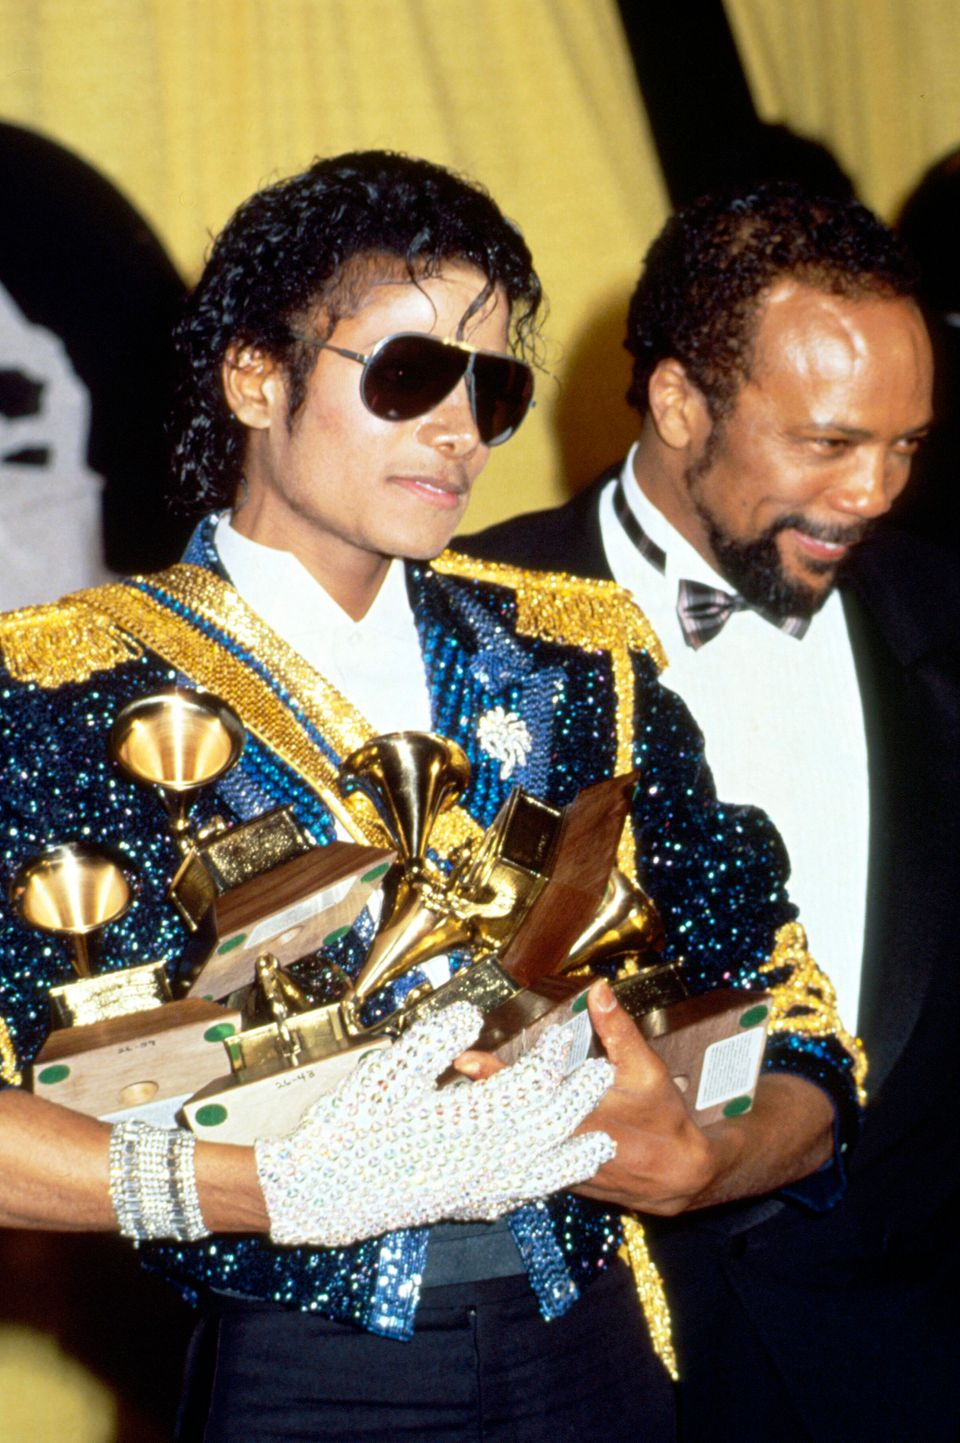 Jackson with Quincy Jones at the 1984 Grammy